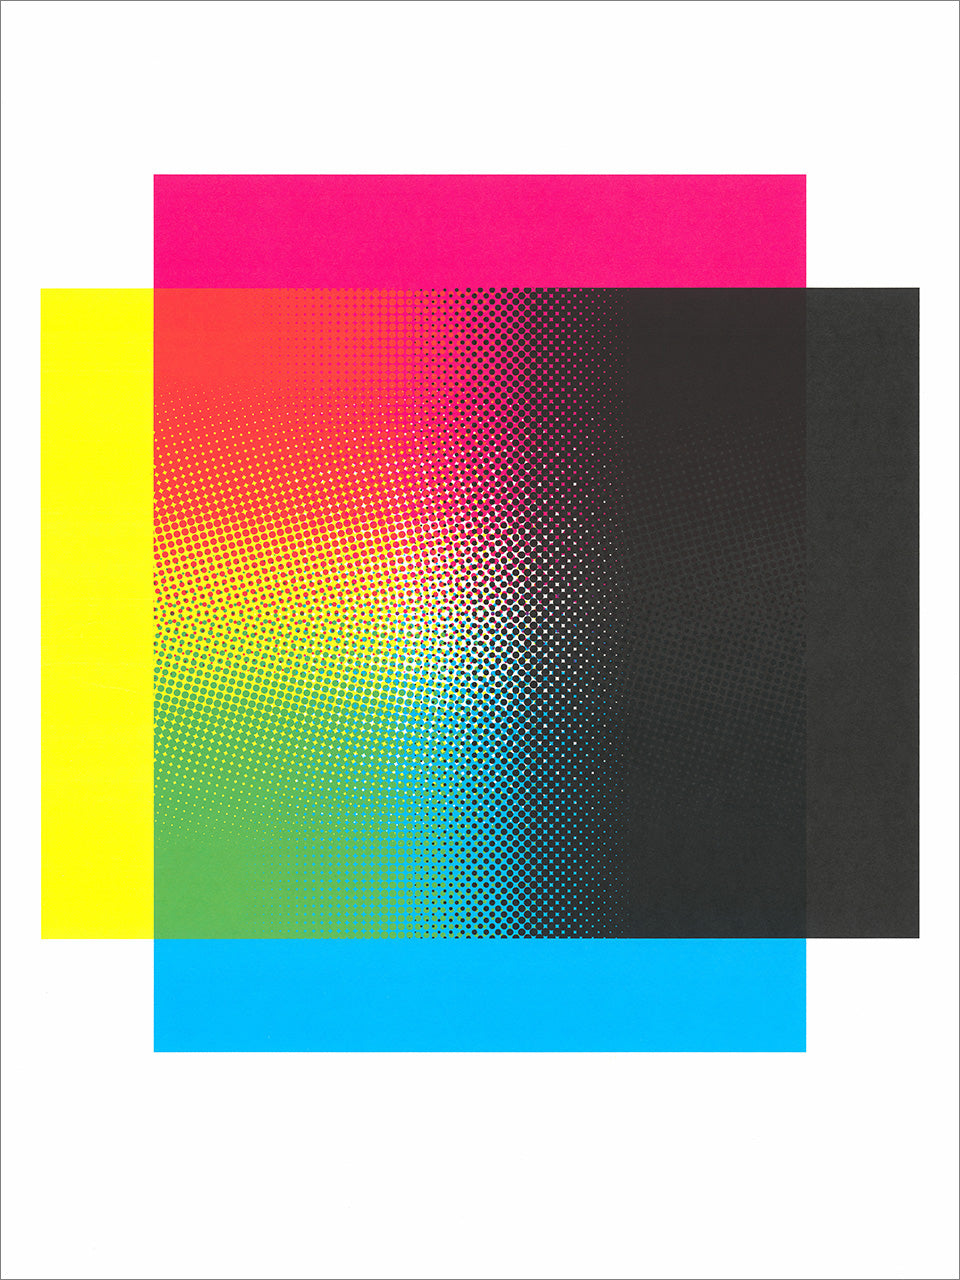 Flavio Trevisan: CMYK ↑↓←→ (CMYK Up Down, Side to Side)